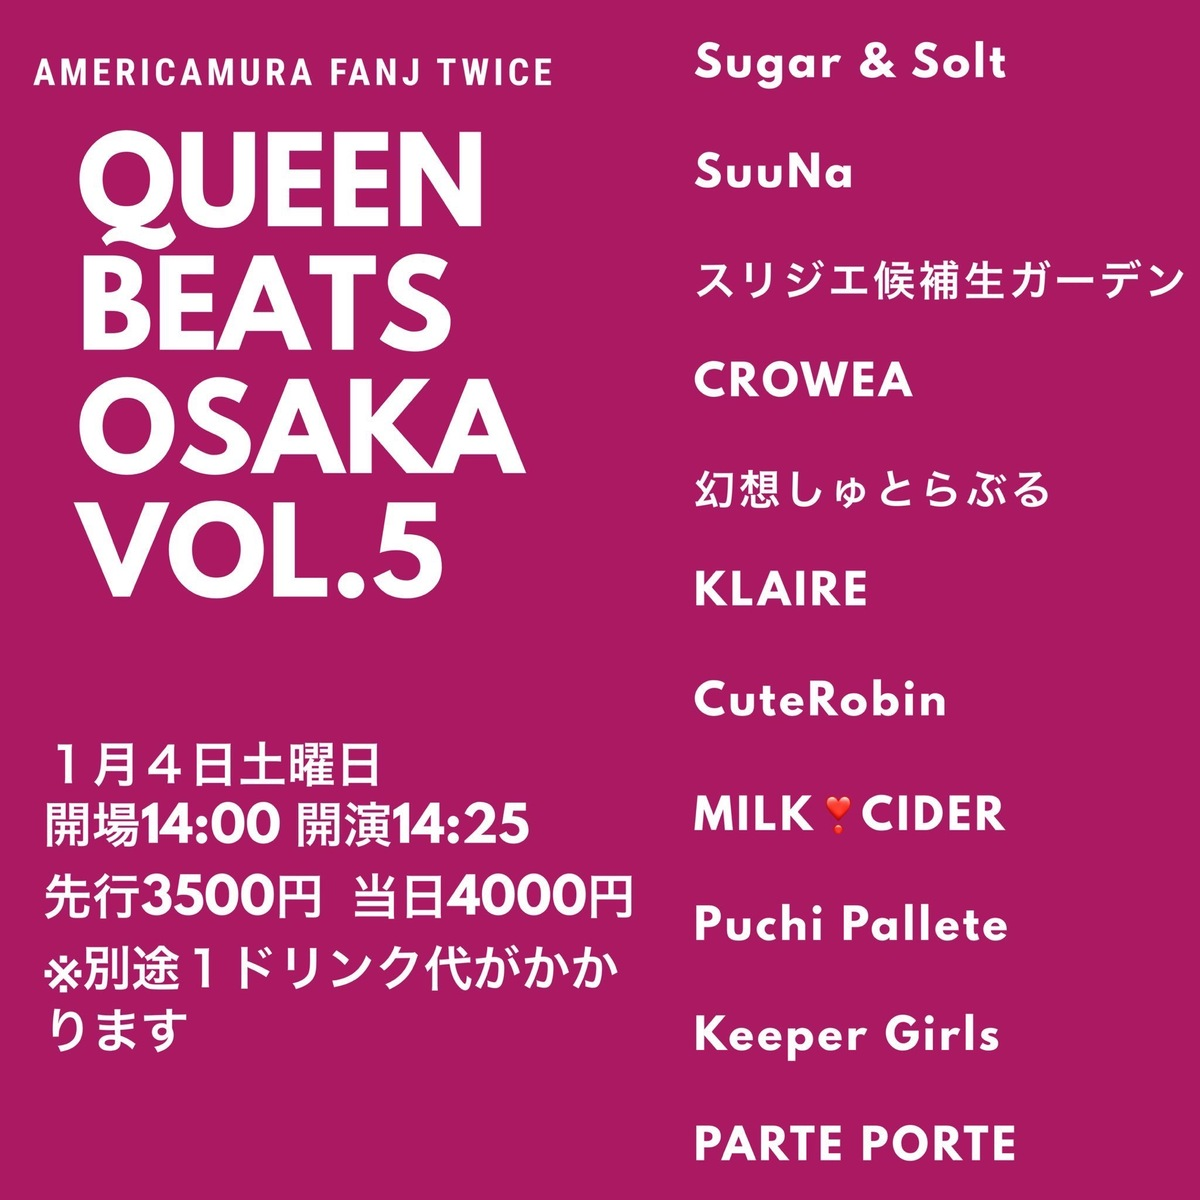 QueenBeatsOSAKA Vol.5